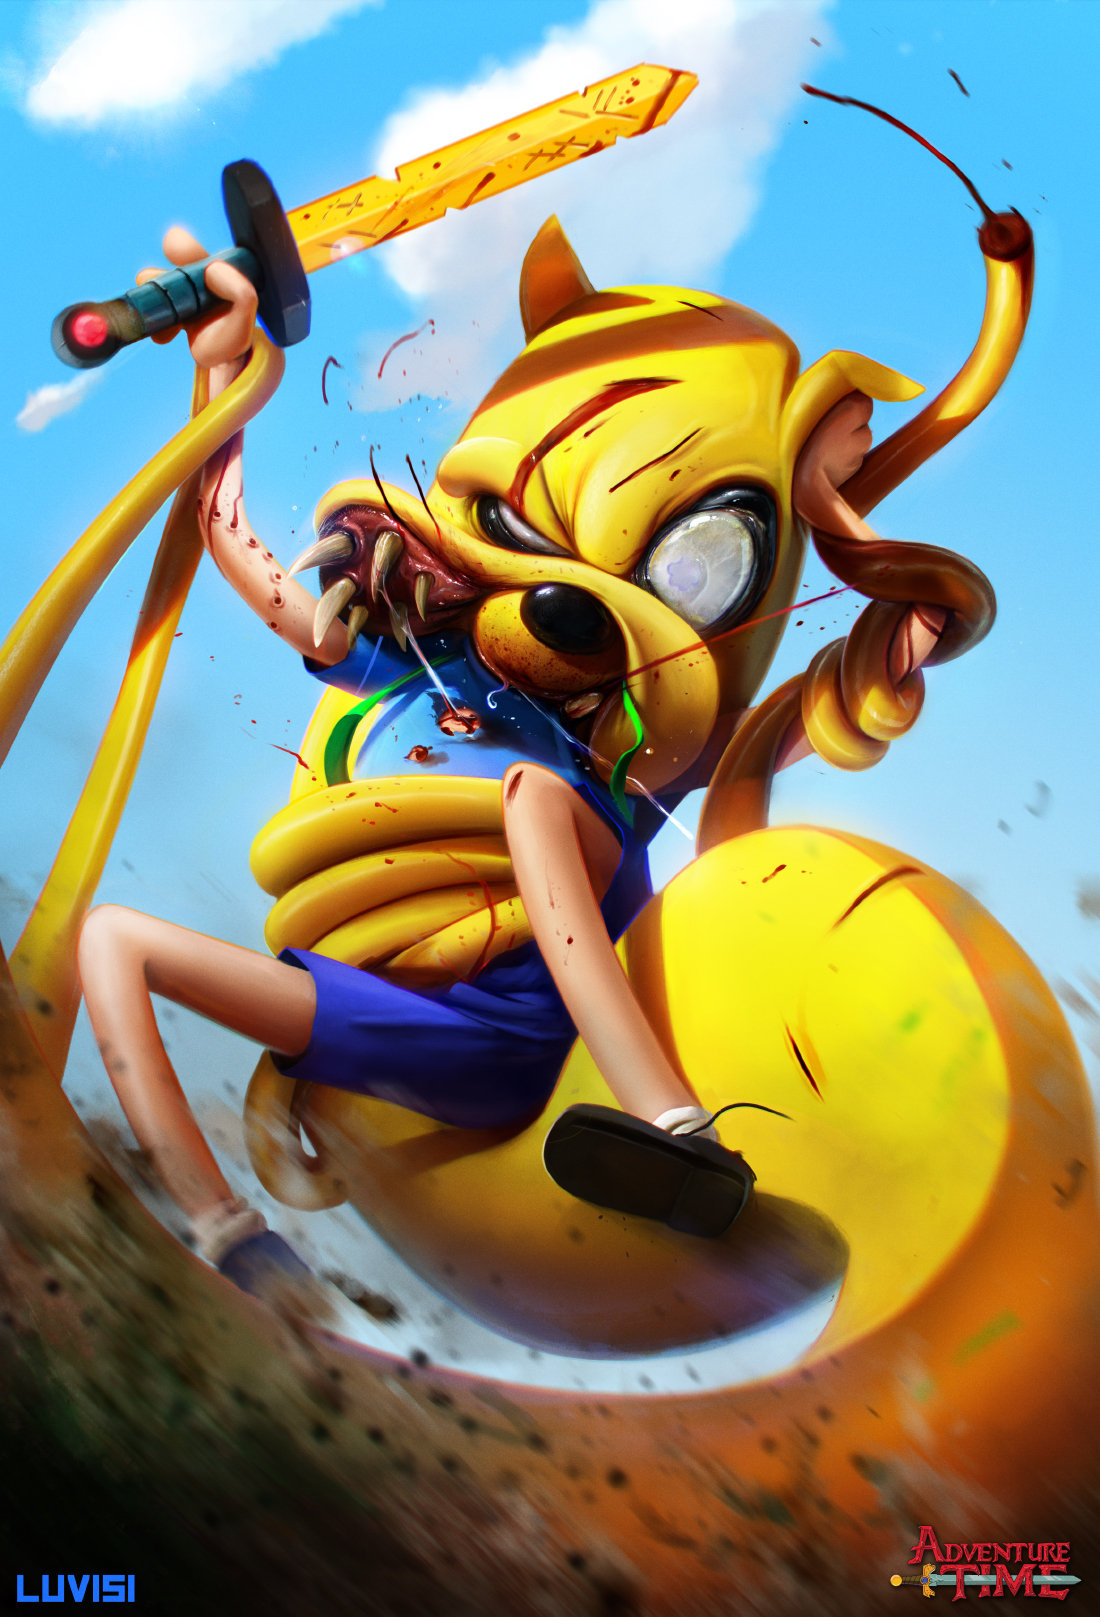 Dan luvisi jake the snake adventure time by danluvisiart d7douwt